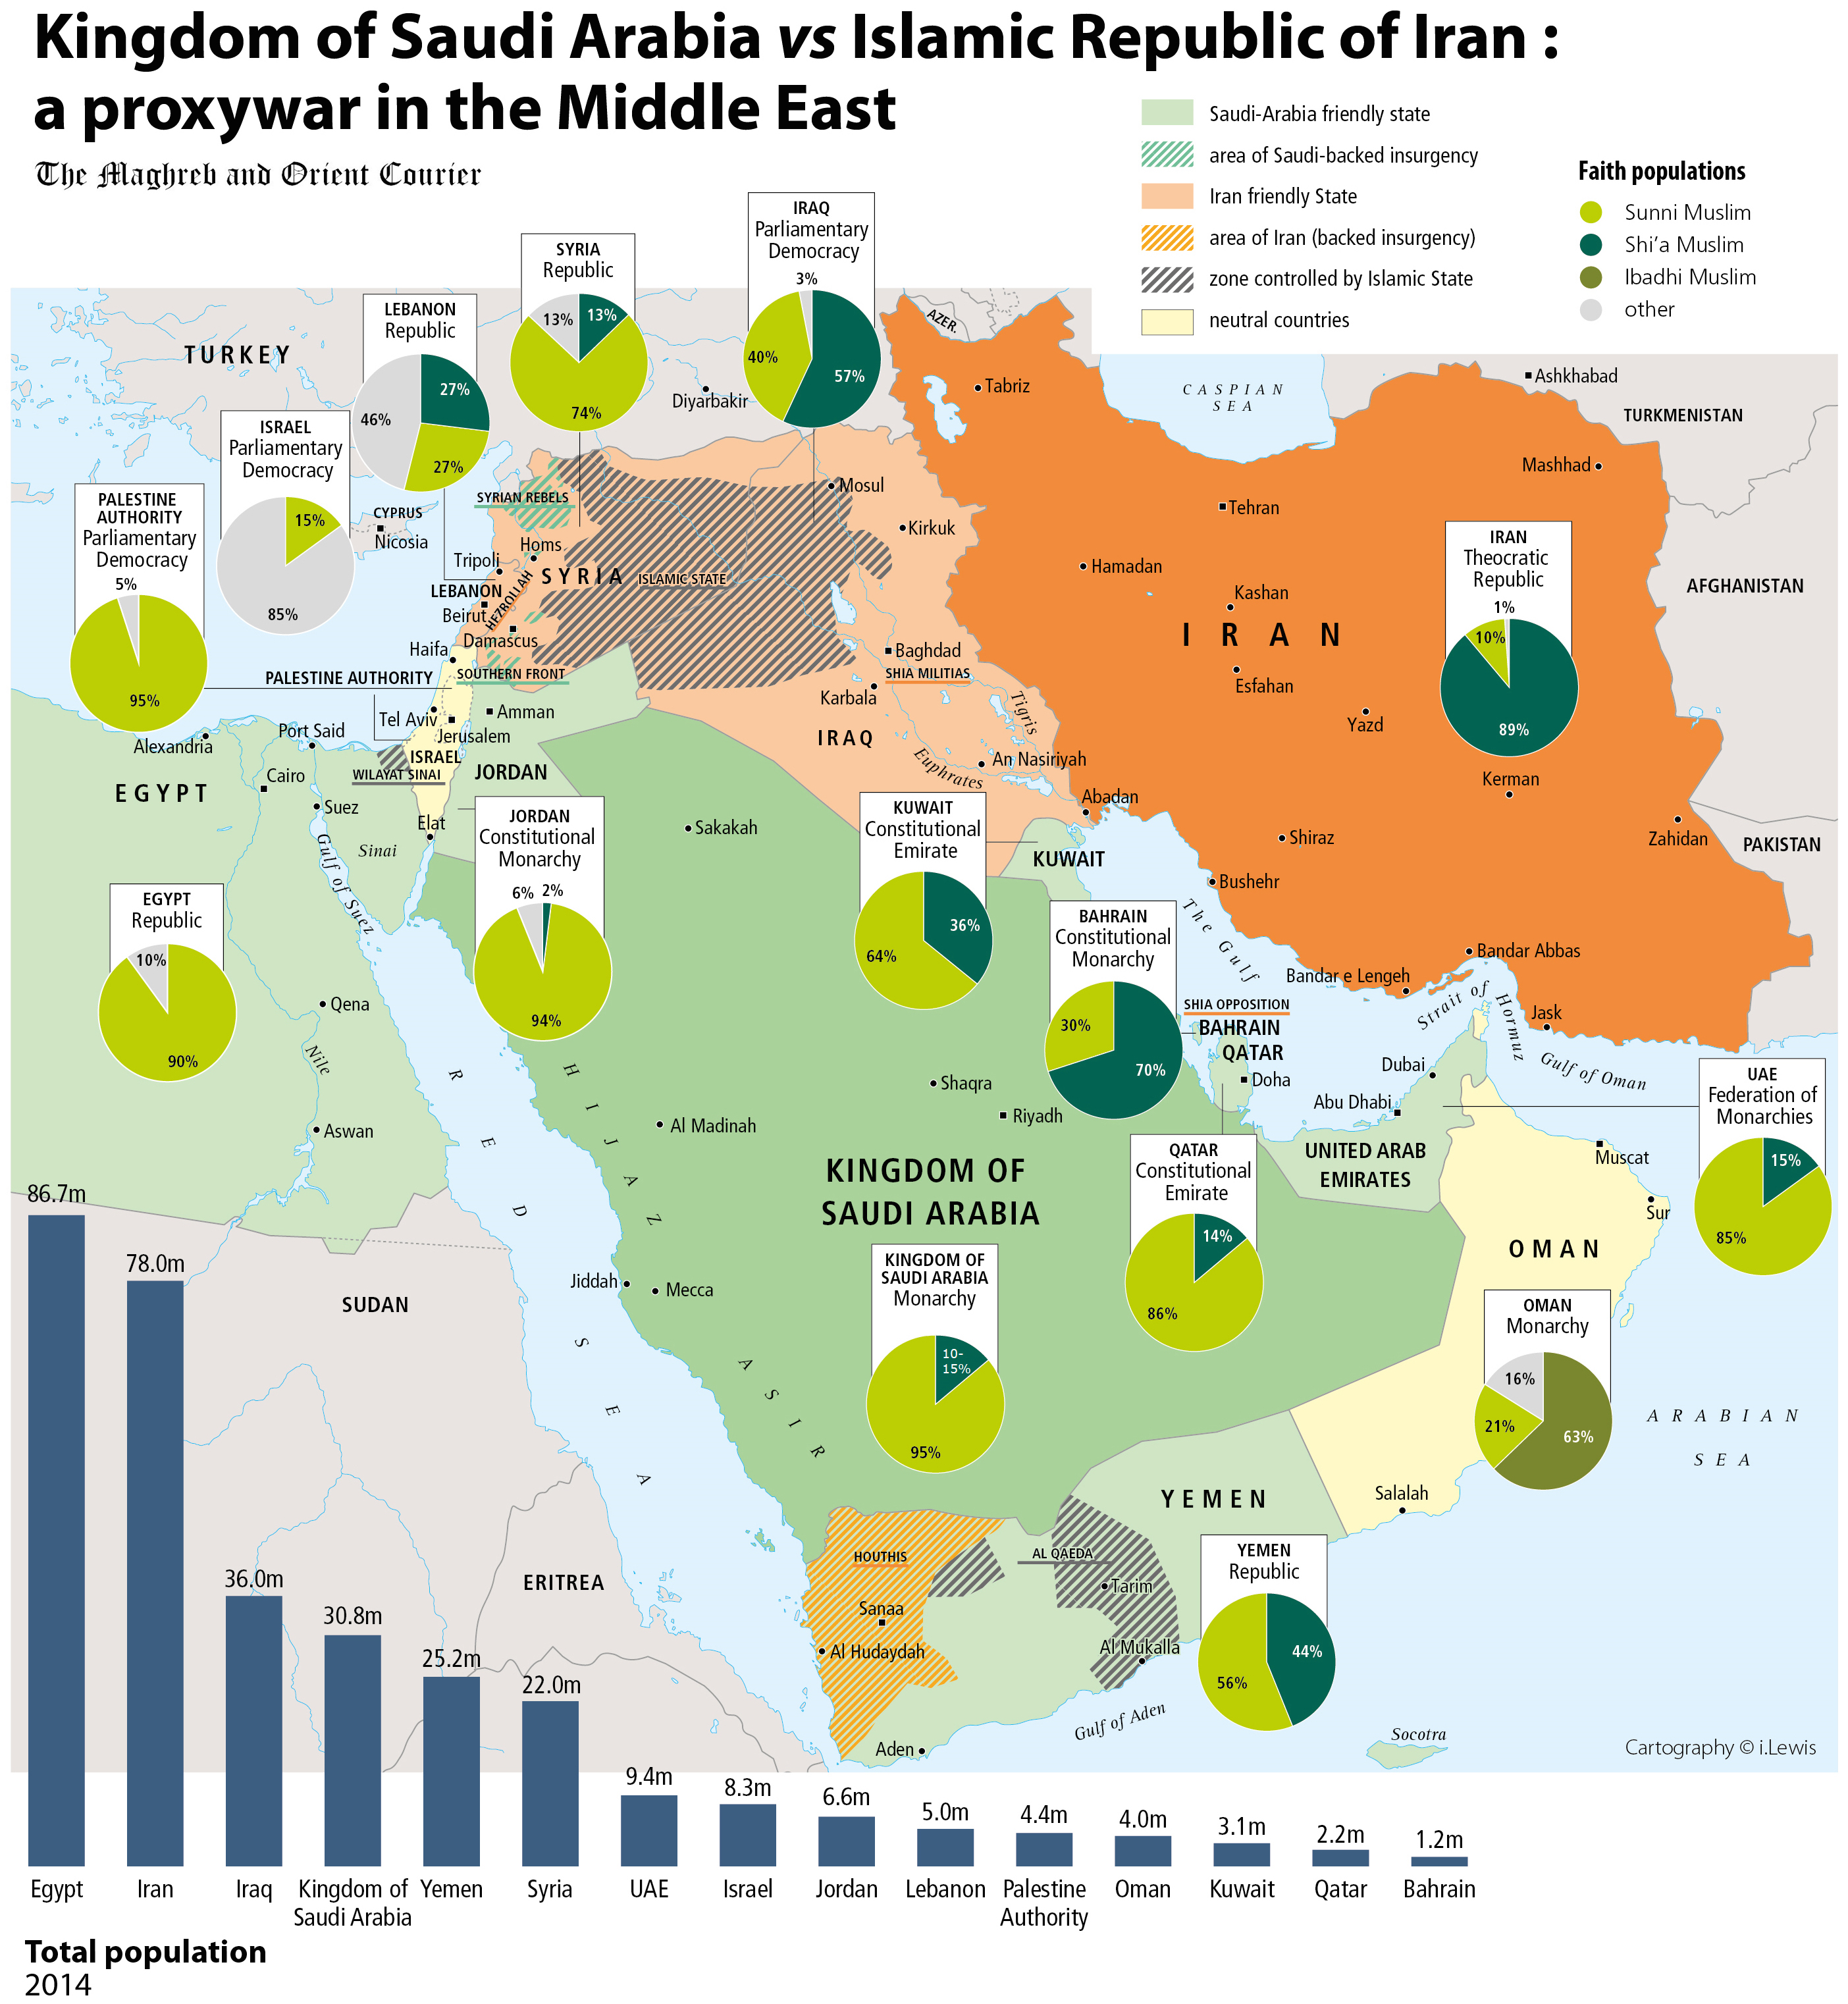 This Map Explains the Saudi-Iran Proxy War – Foreign Policy Shiite Sunni Map on sunni syria map, sunni and shia differences chart, sunni vs shia, abu bakr, muhammad al-mahdi, sunni countries, hasan ibn ali, muslim distribution map, sunni iraq map, bahrain sunni-shia map, sunni middle east map, sunni muslim map, sunni-shia population map, shia islam map, muawiyah i, fatima zahra, sunni islam, husayn ibn ali, fatimid caliphate, sunni and shi a split, aisha bint abu bakr,